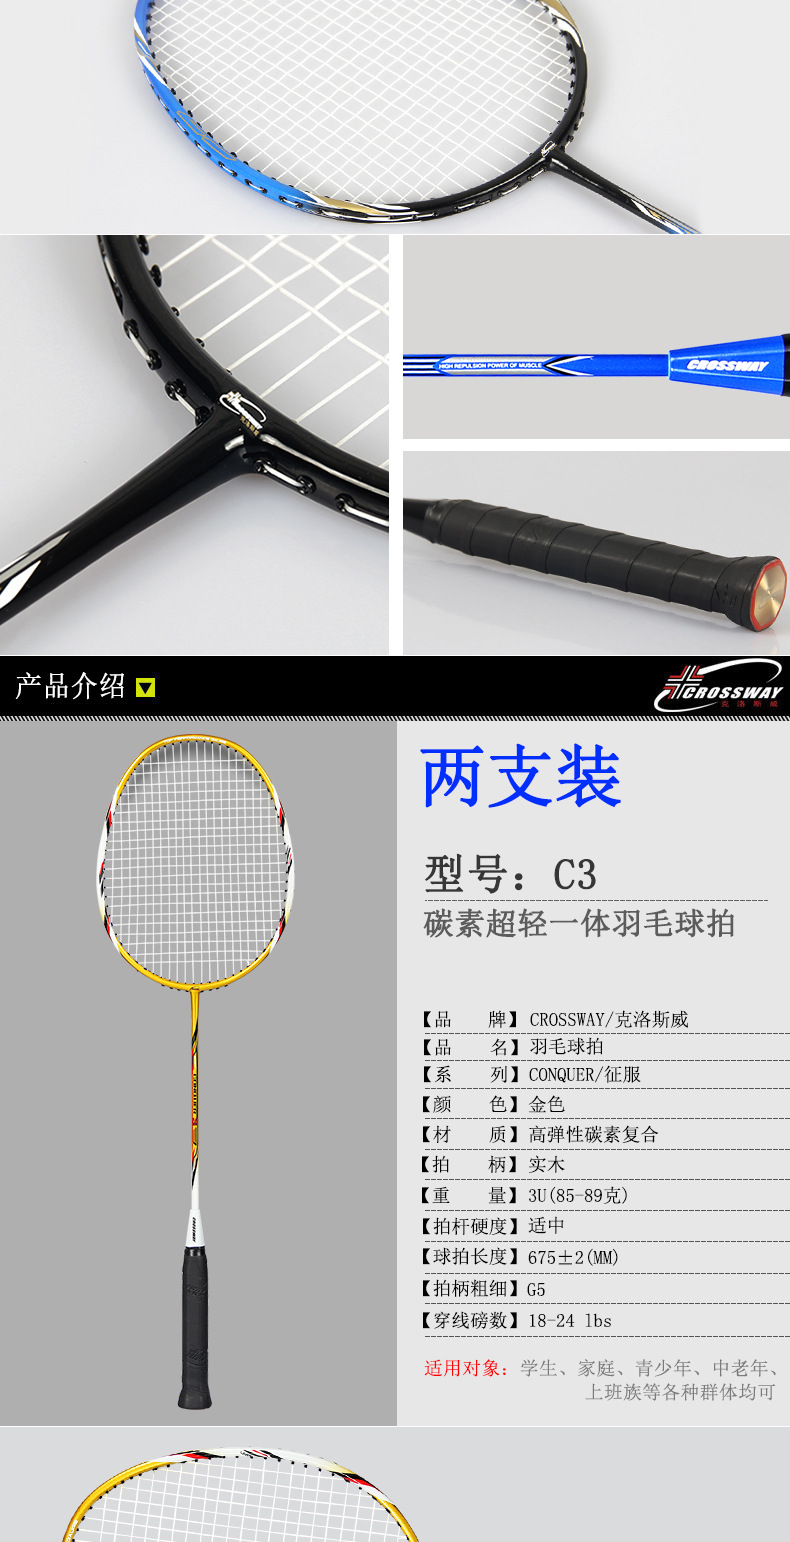 Crossway 2Pcs Best Doubles Match Badminton Rackets Carbon Smash Championships Shuttlecock Speedminton Racquets Equipment Kit Set 8